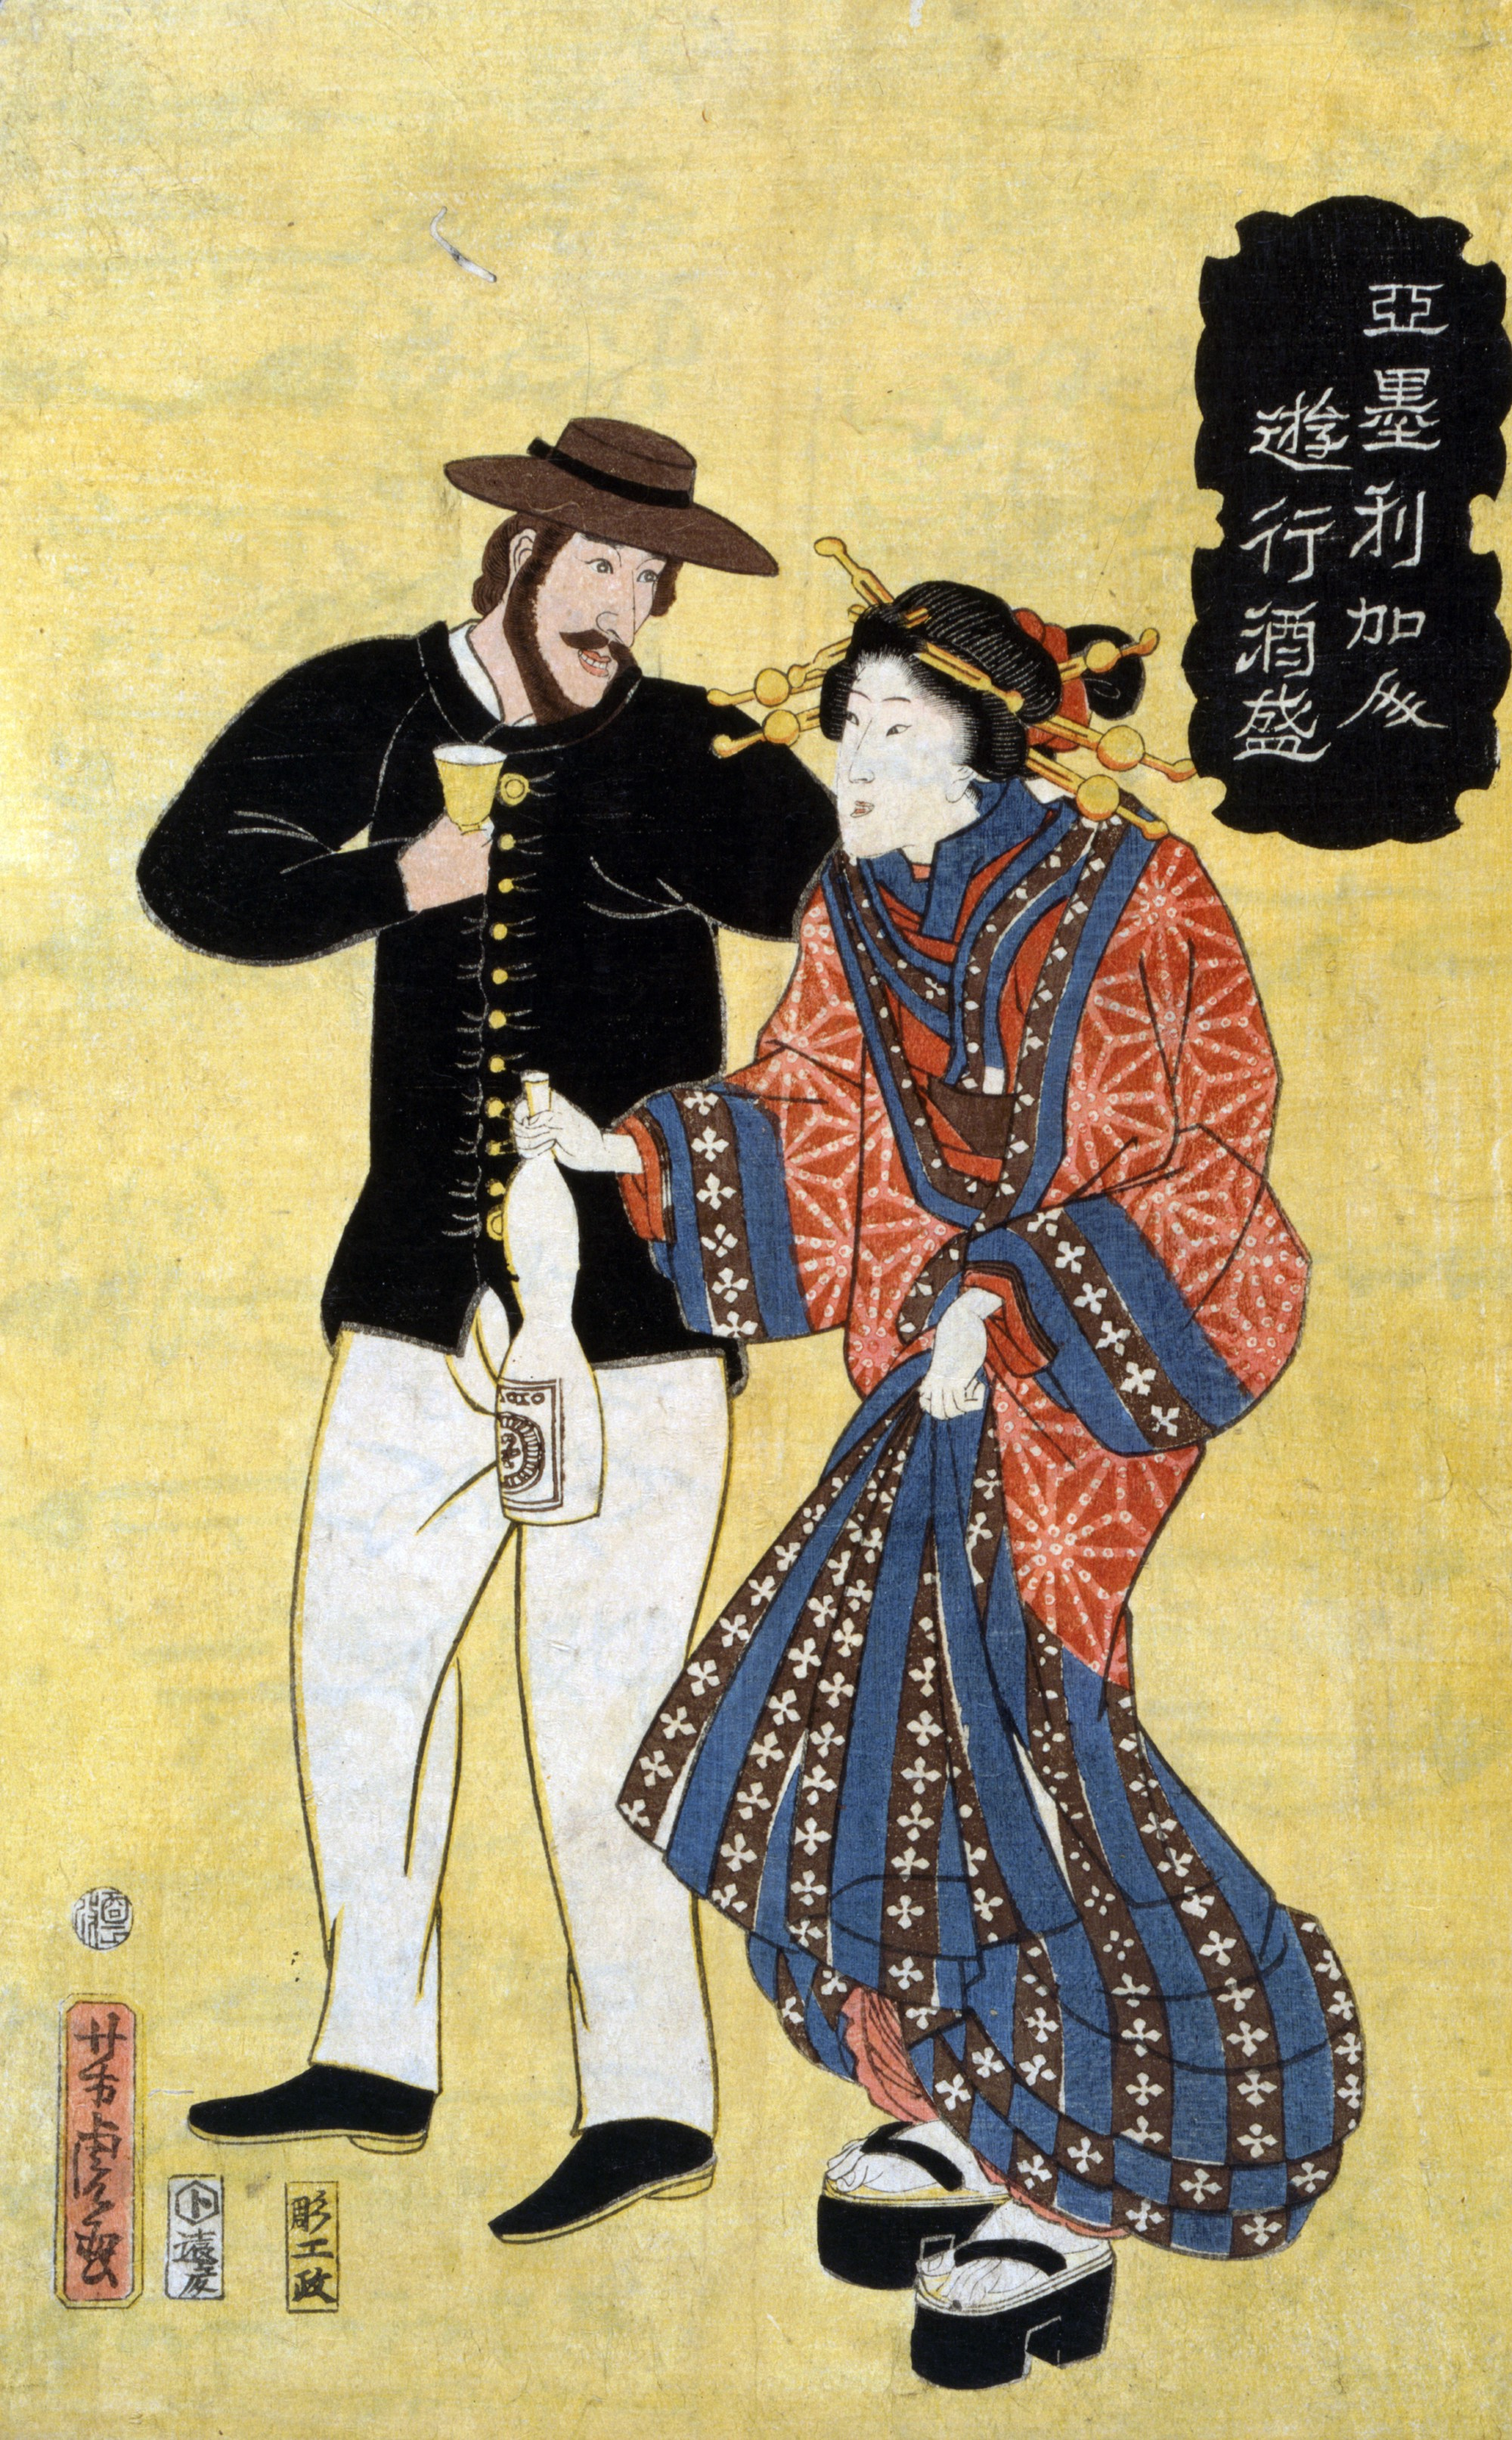 These 19th century images show what Japanese locals really thought of American tourists